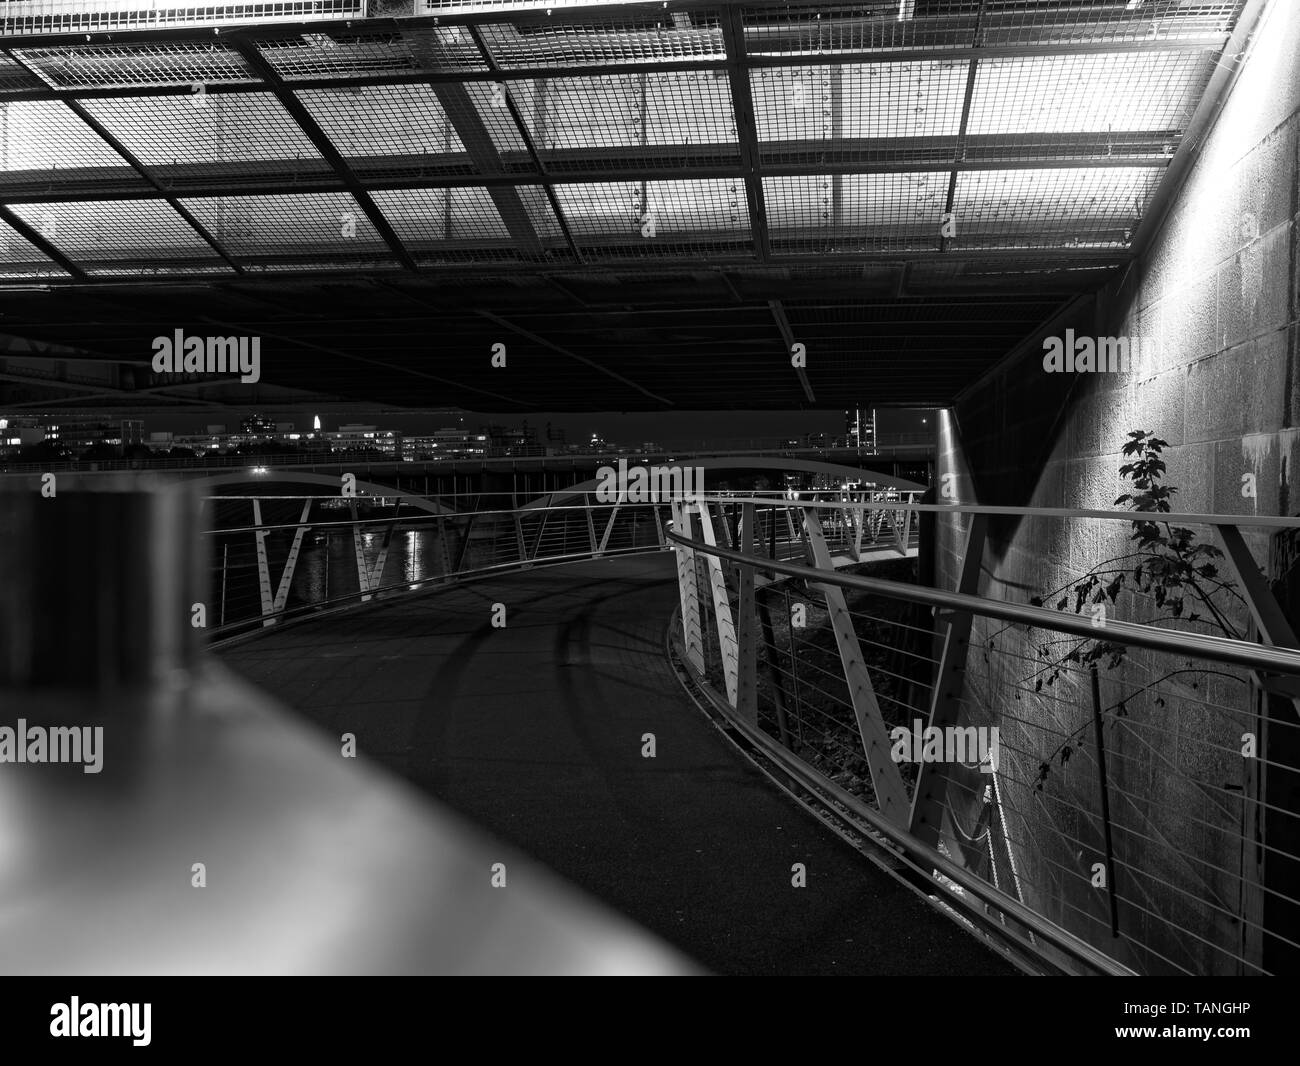 Perspective view of pedestrian overpass above the River Thames with steel fence and guard rails at night. Black and white image. Bridges and the river - Stock Image